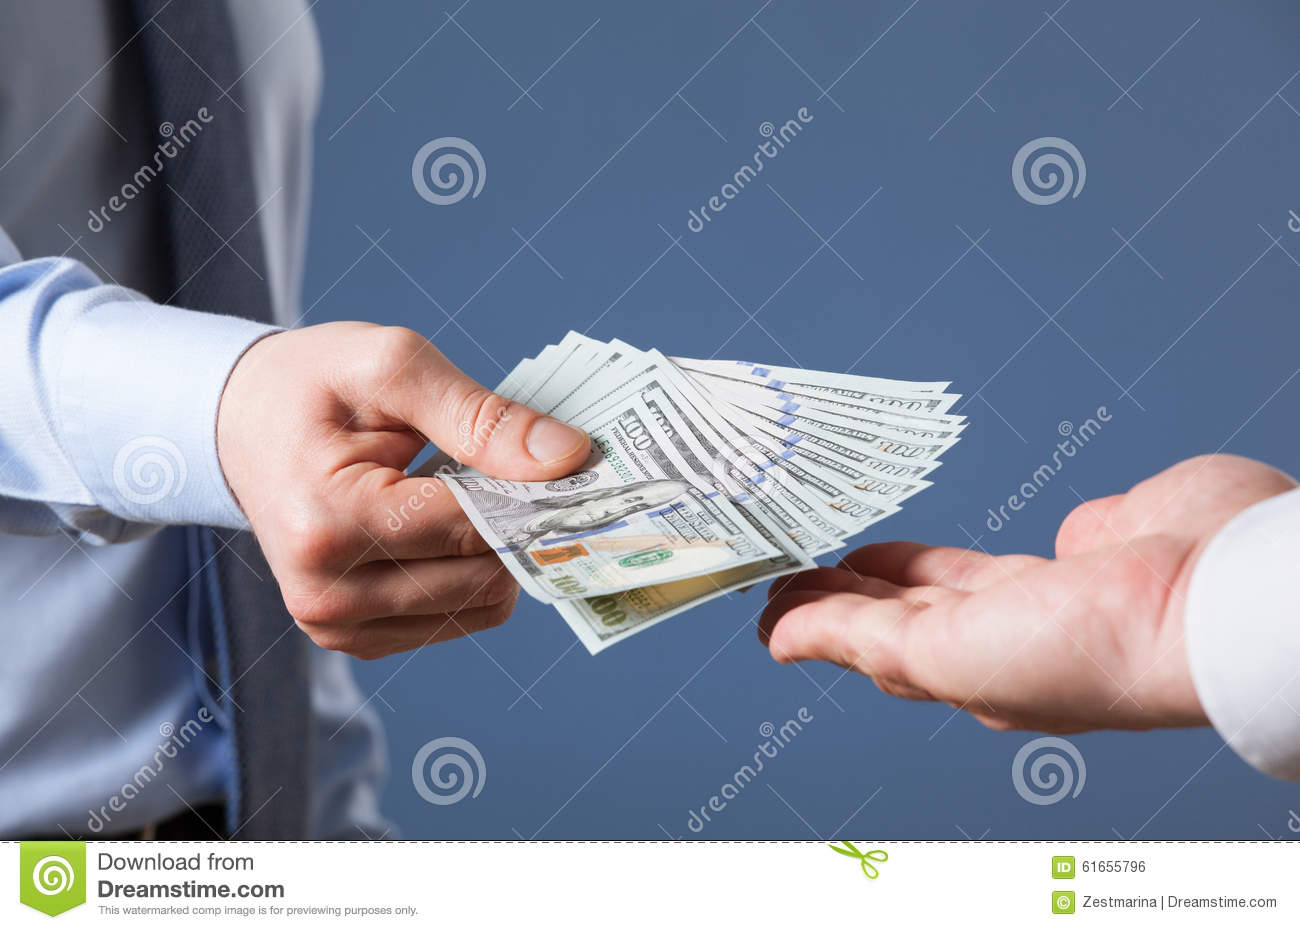 Human hands exchanging money on blue background